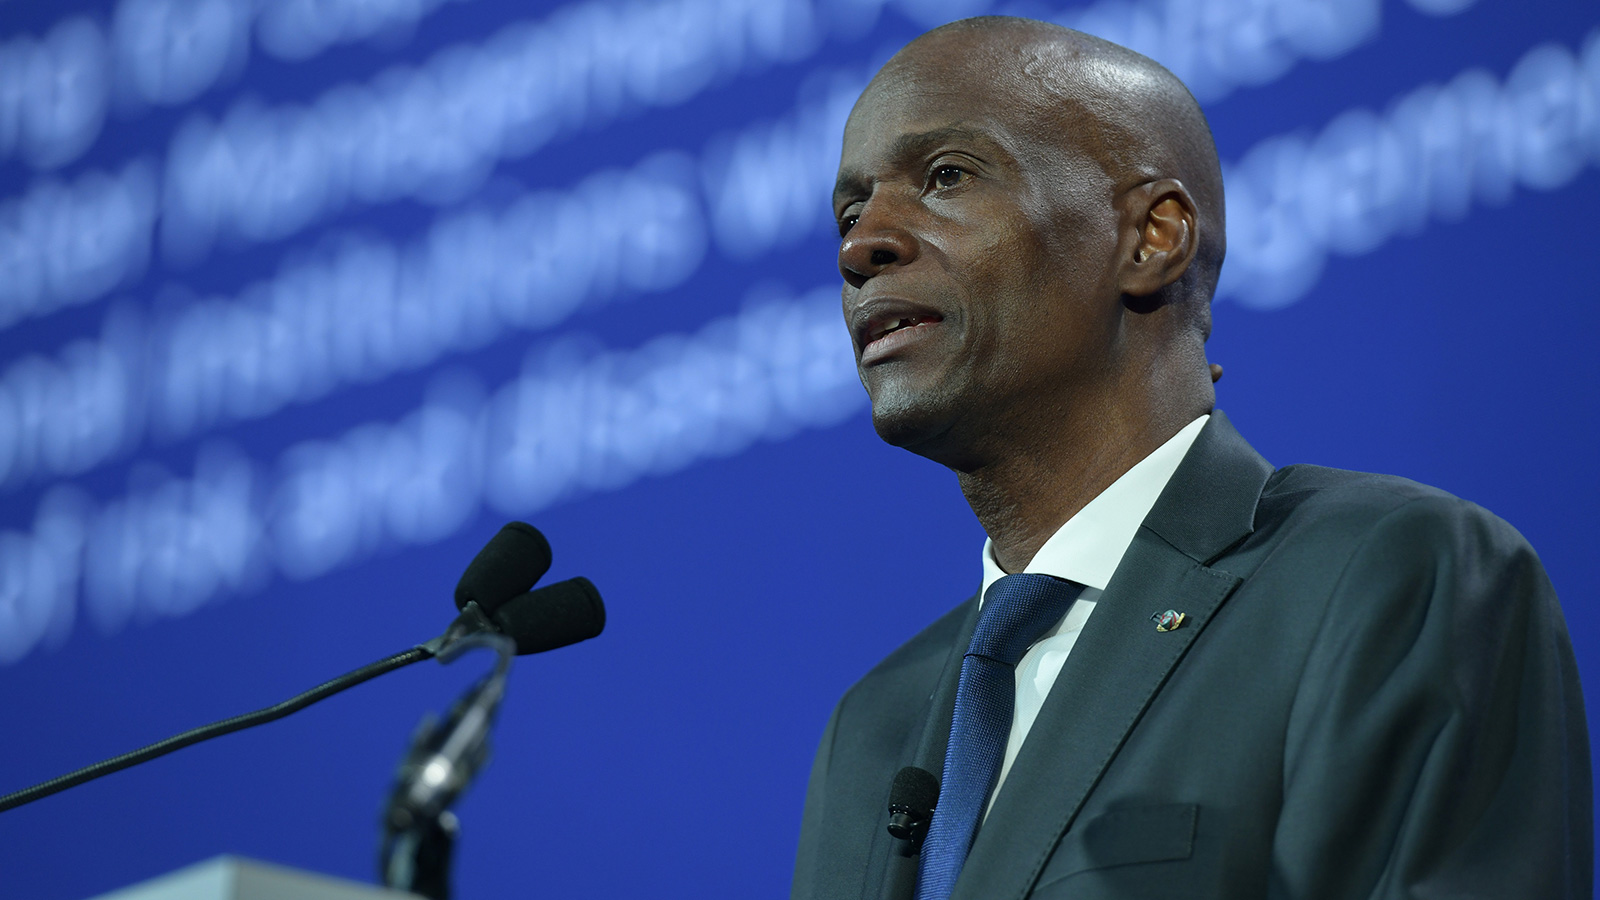 Haiti President Jovenel Moise speaks onstage during the 2018 Concordia Annual Summit in New York on September 25, 2018.